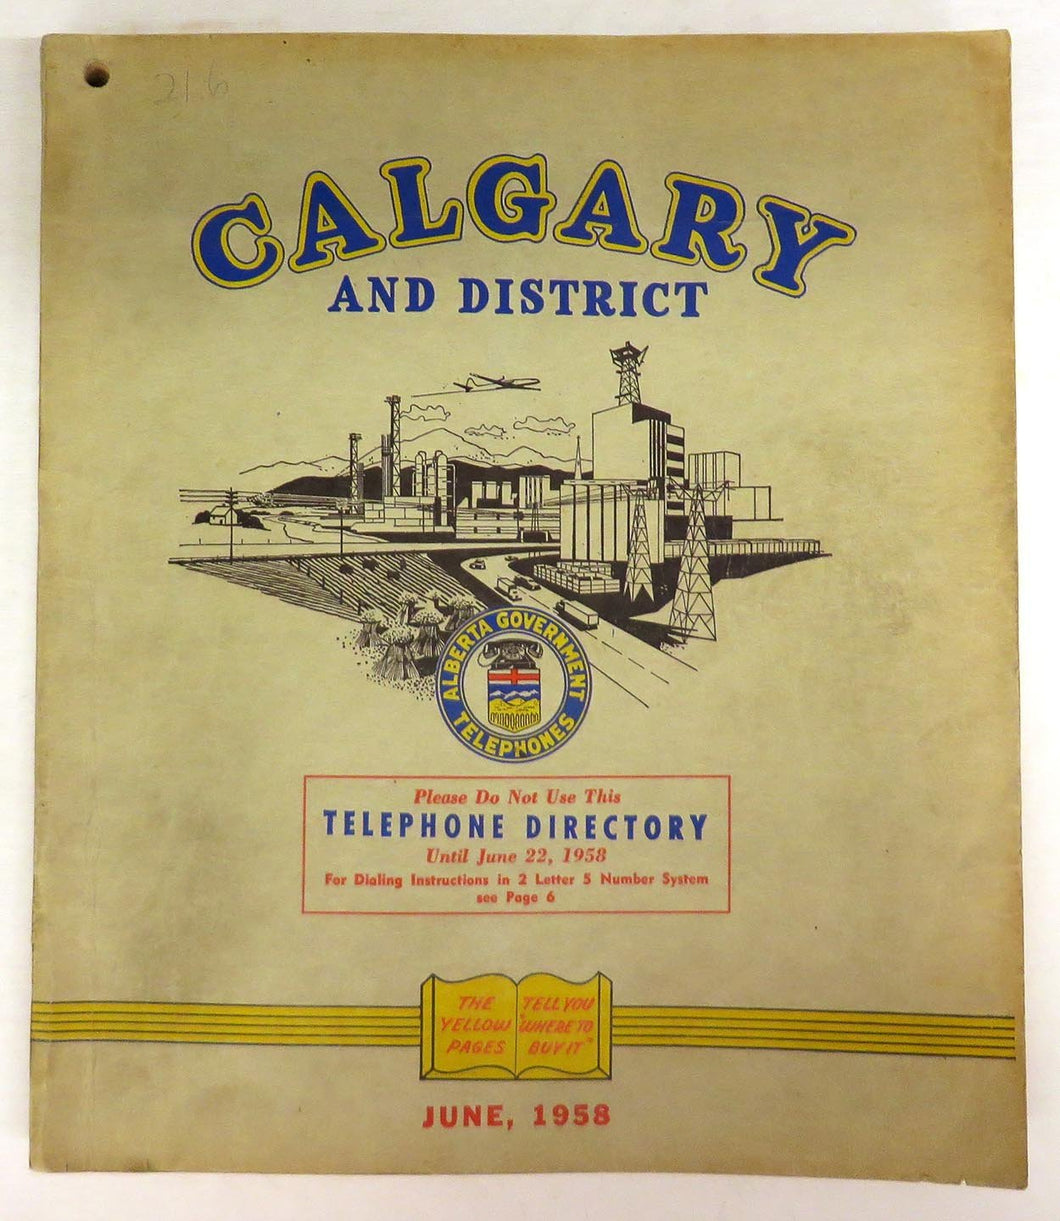 Calgary and District telephone directory, June 1958